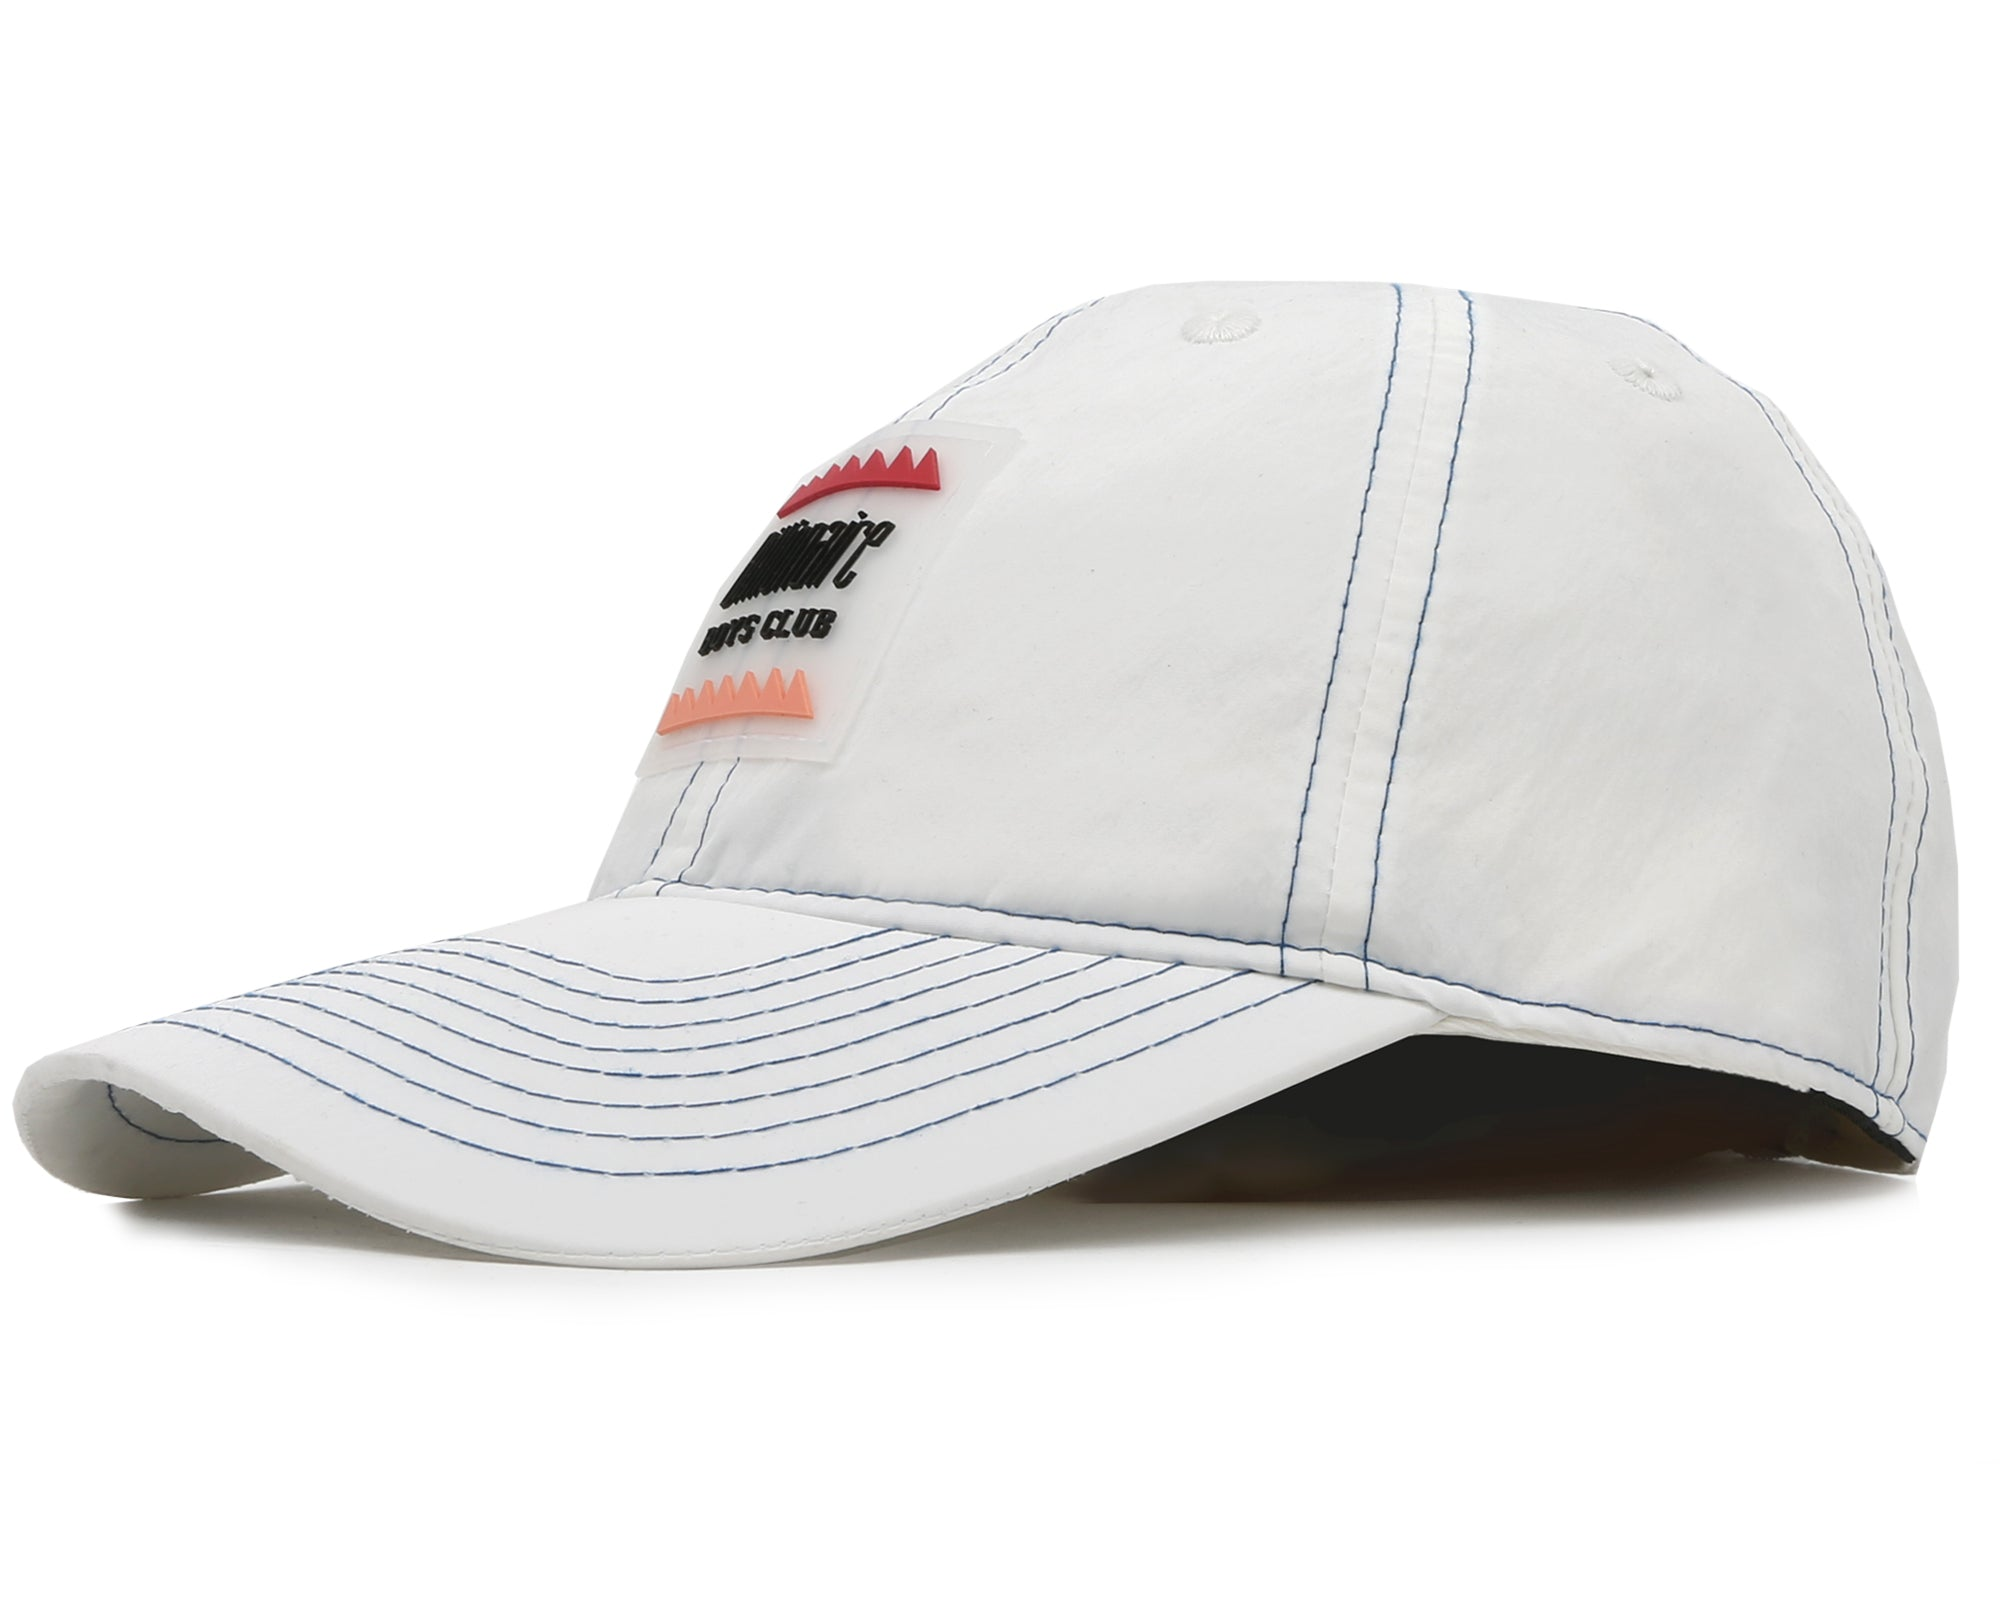 NYLON CURVED VISOR CAP - WHITE